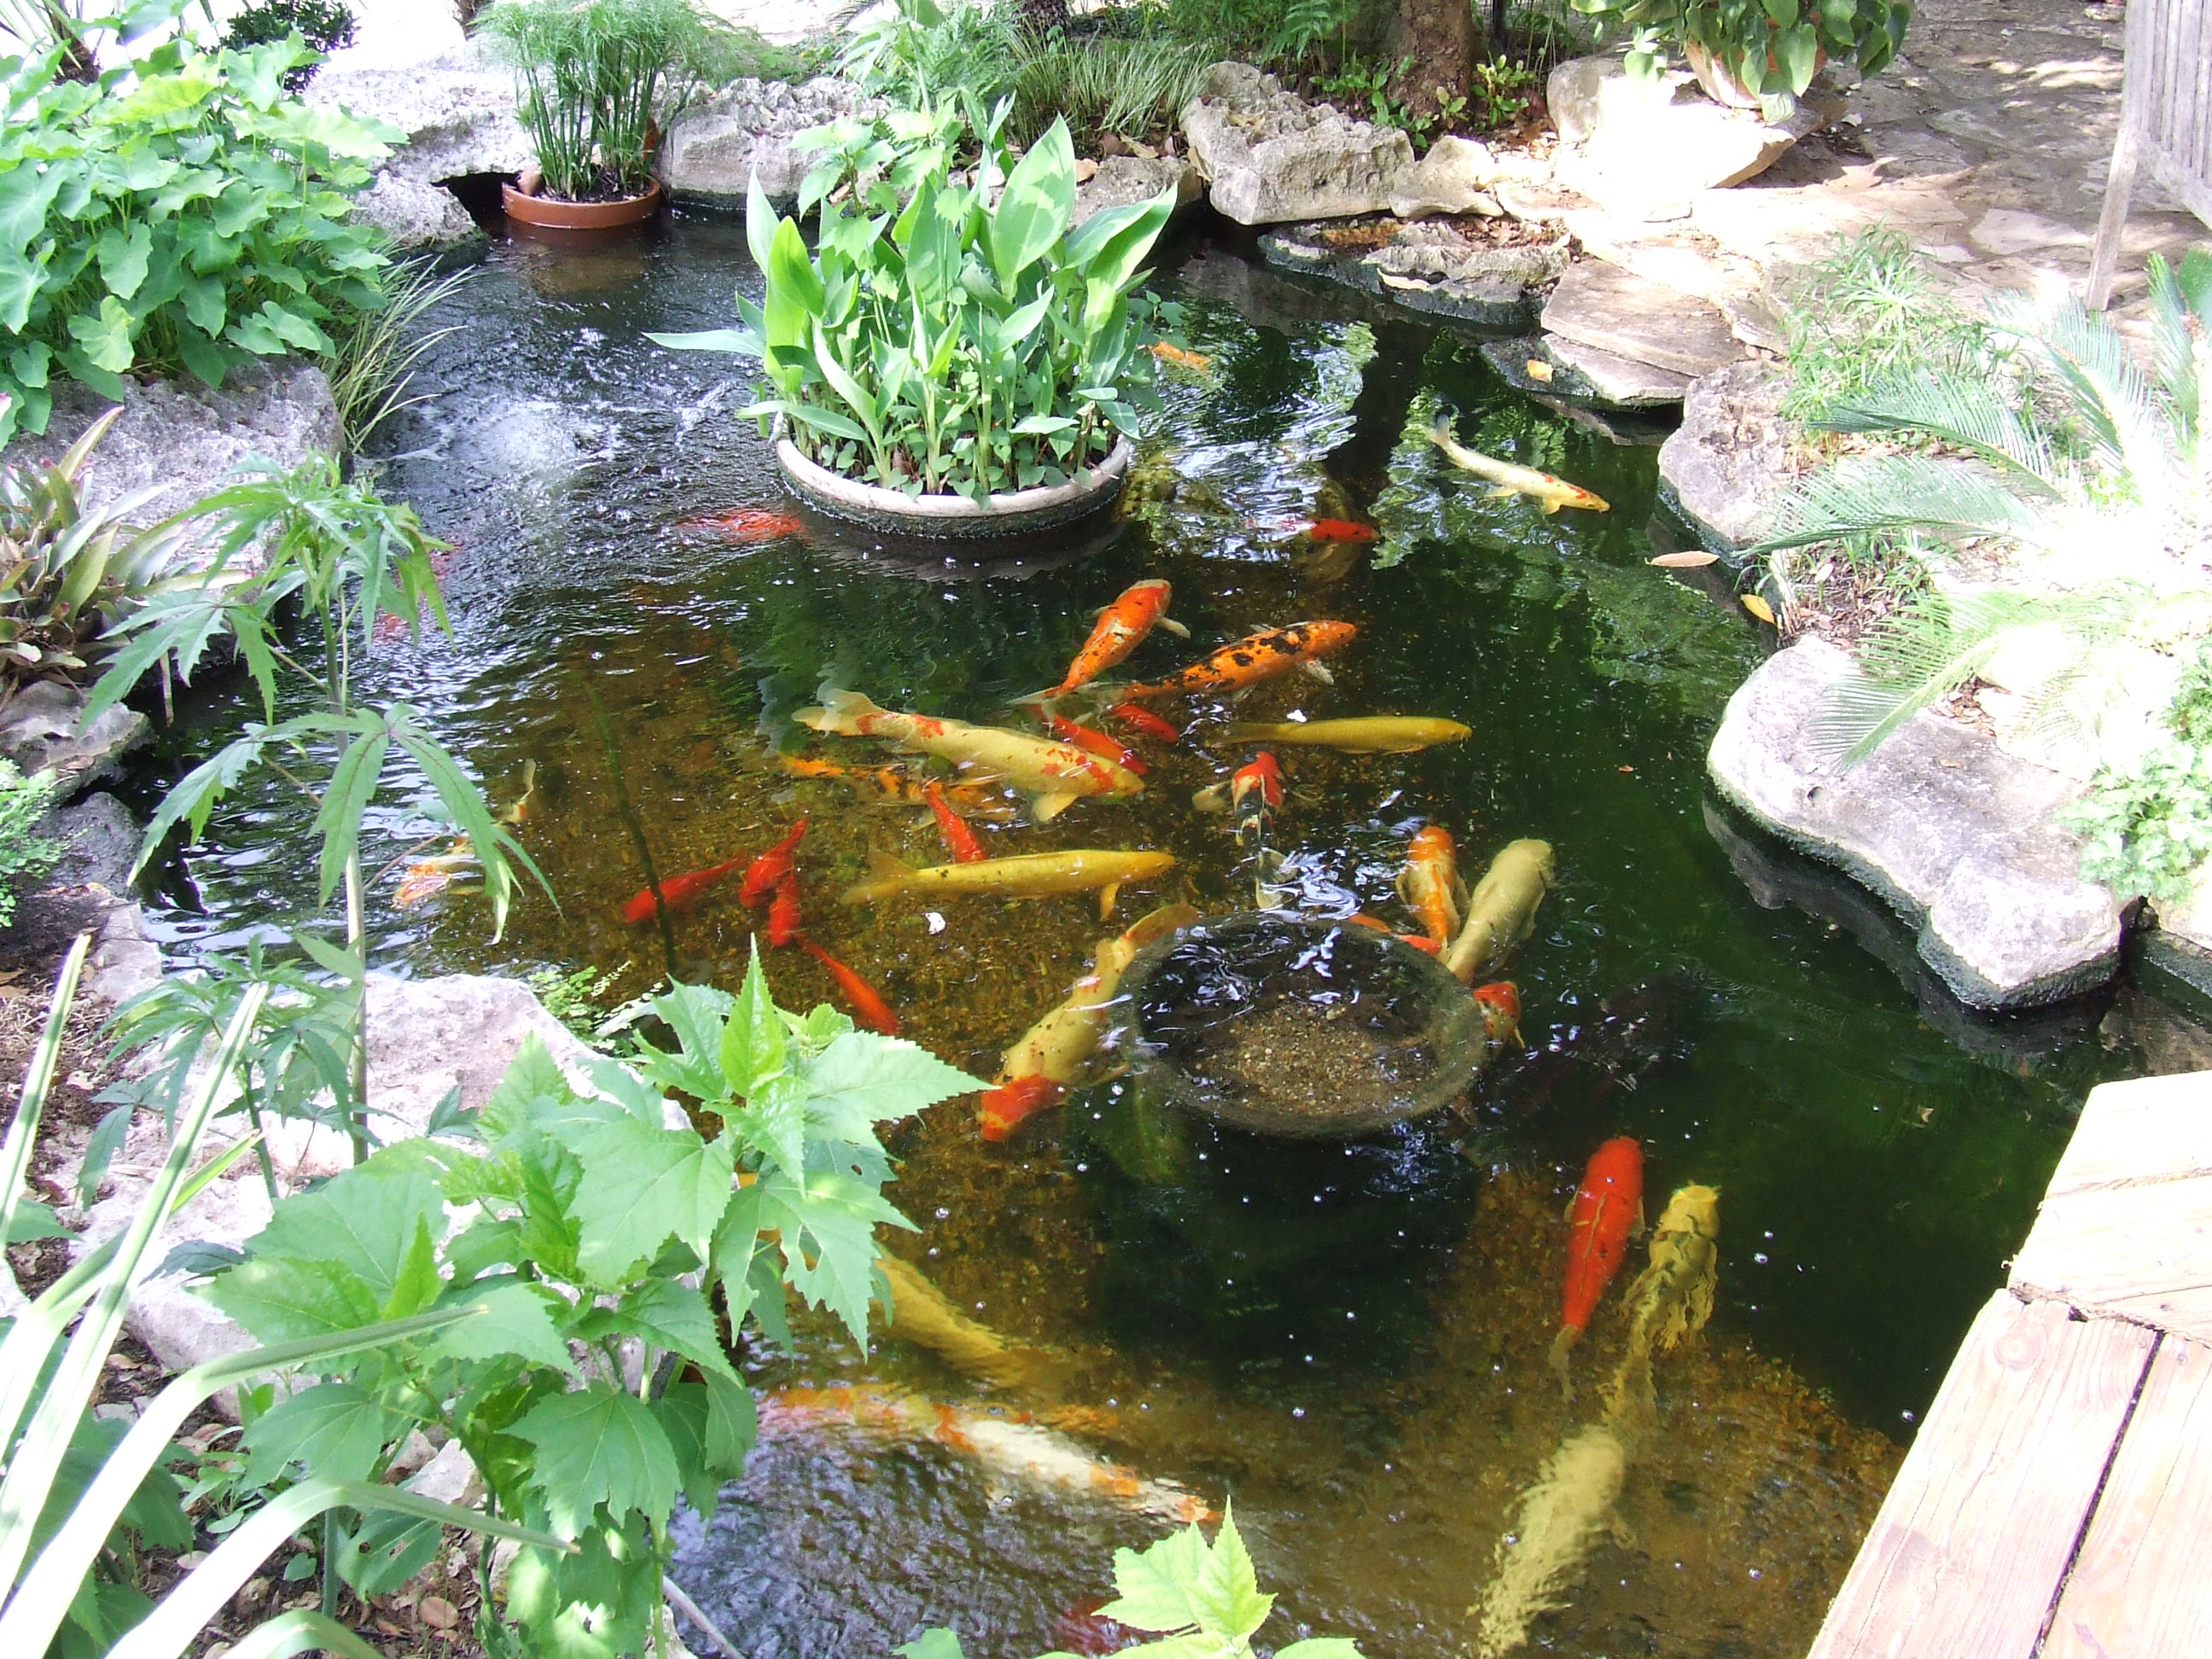 Koi Filters & Koi Pond Systems with Self Cleaning Filters